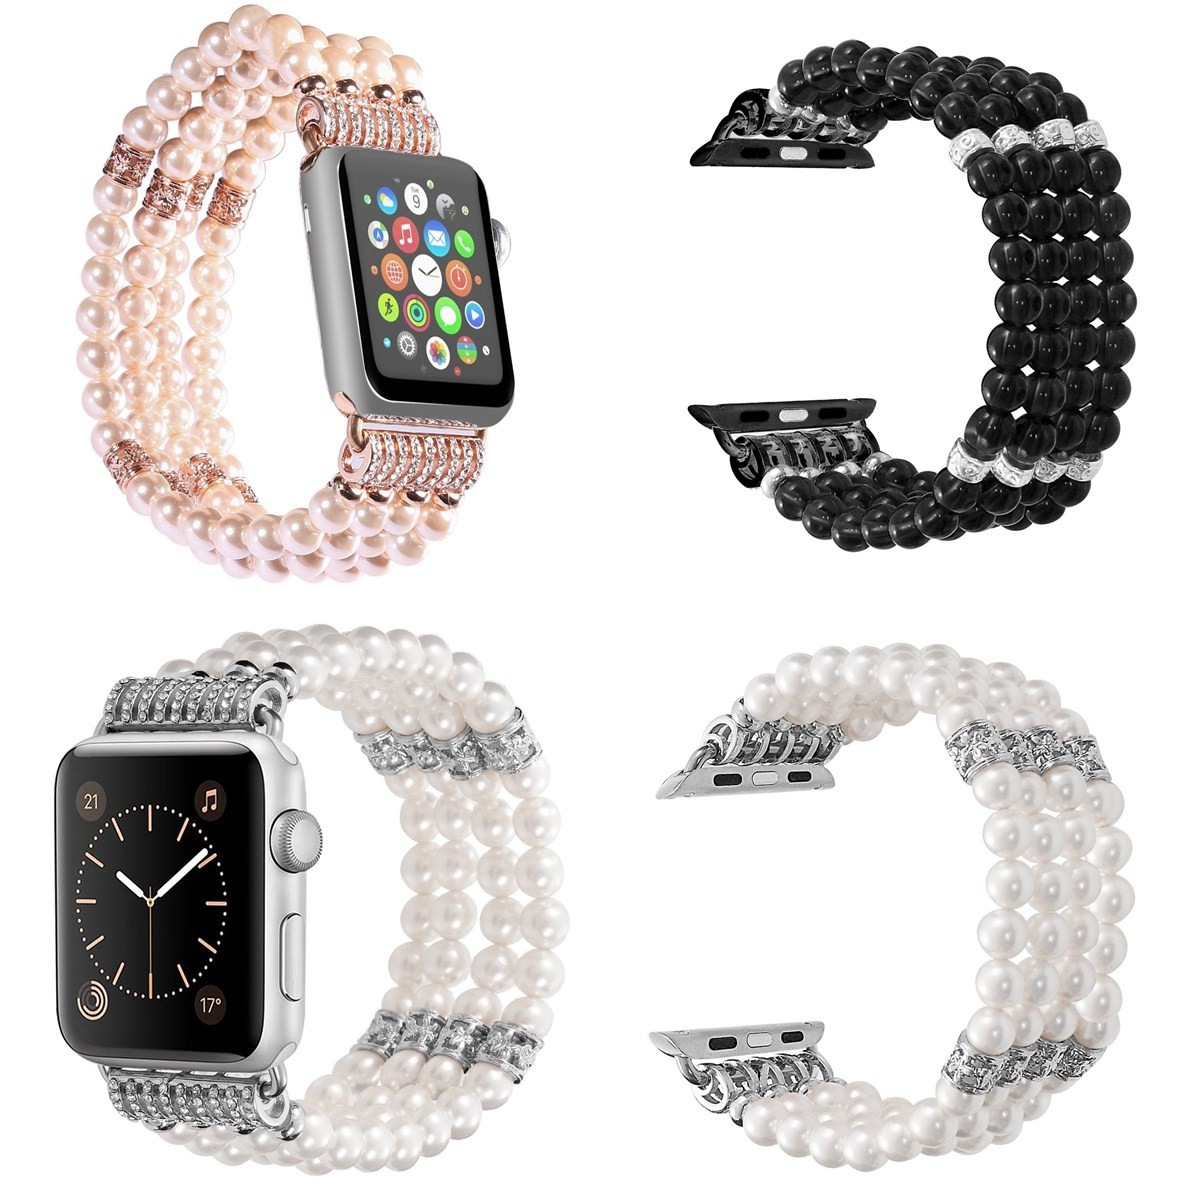 Pearl Beads Bracelet Watch Band Strap for Apple Watch i